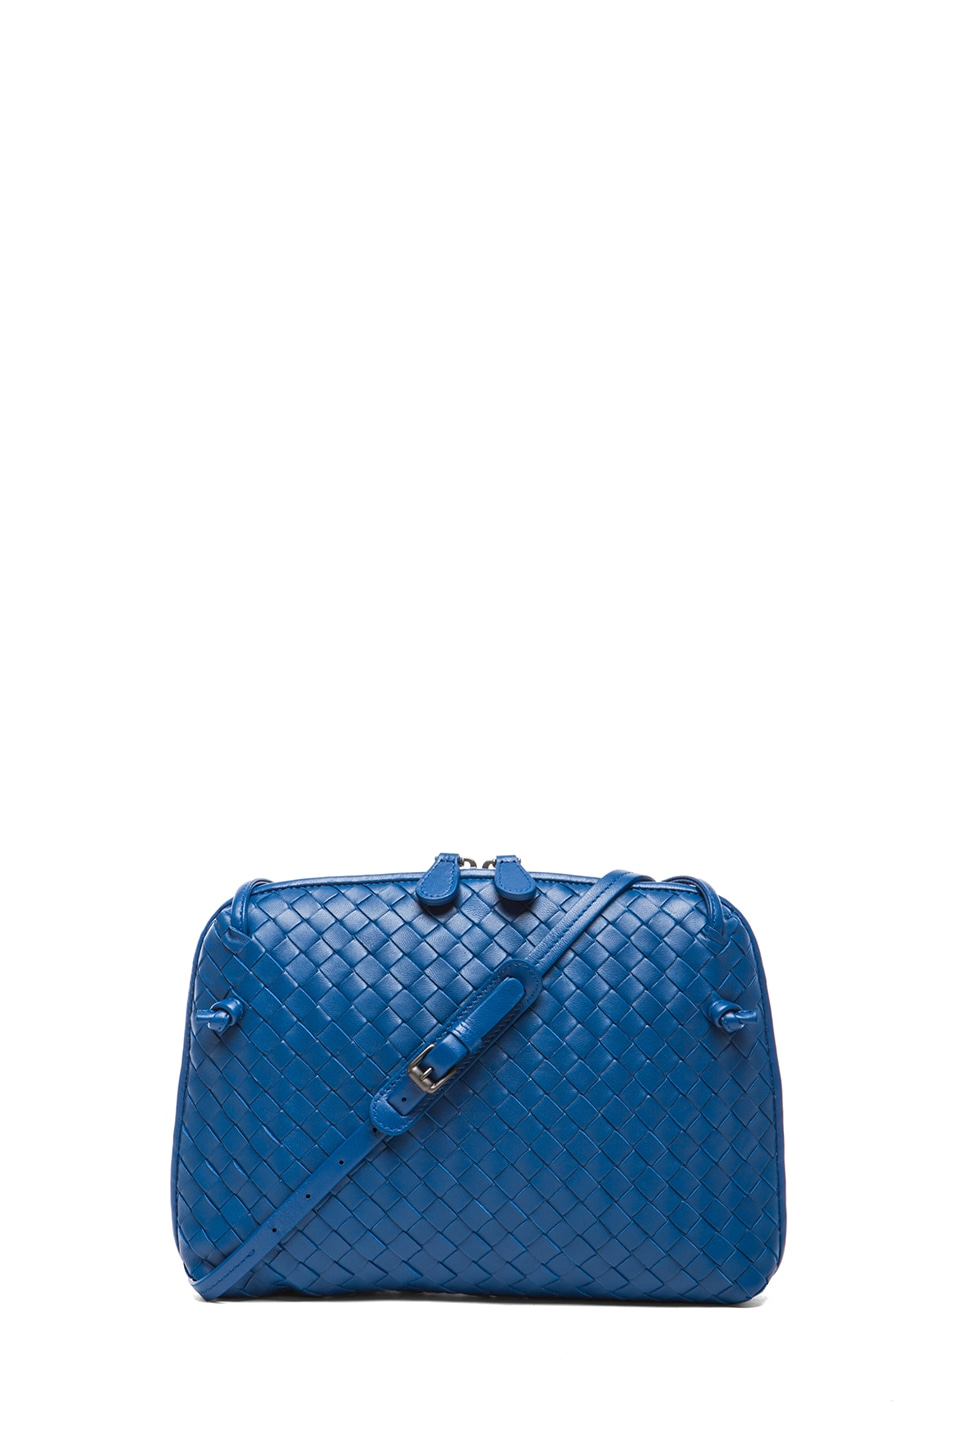 Image 1 of Bottega Veneta Intrecciato Nappa Cross Body Bag in Electrique